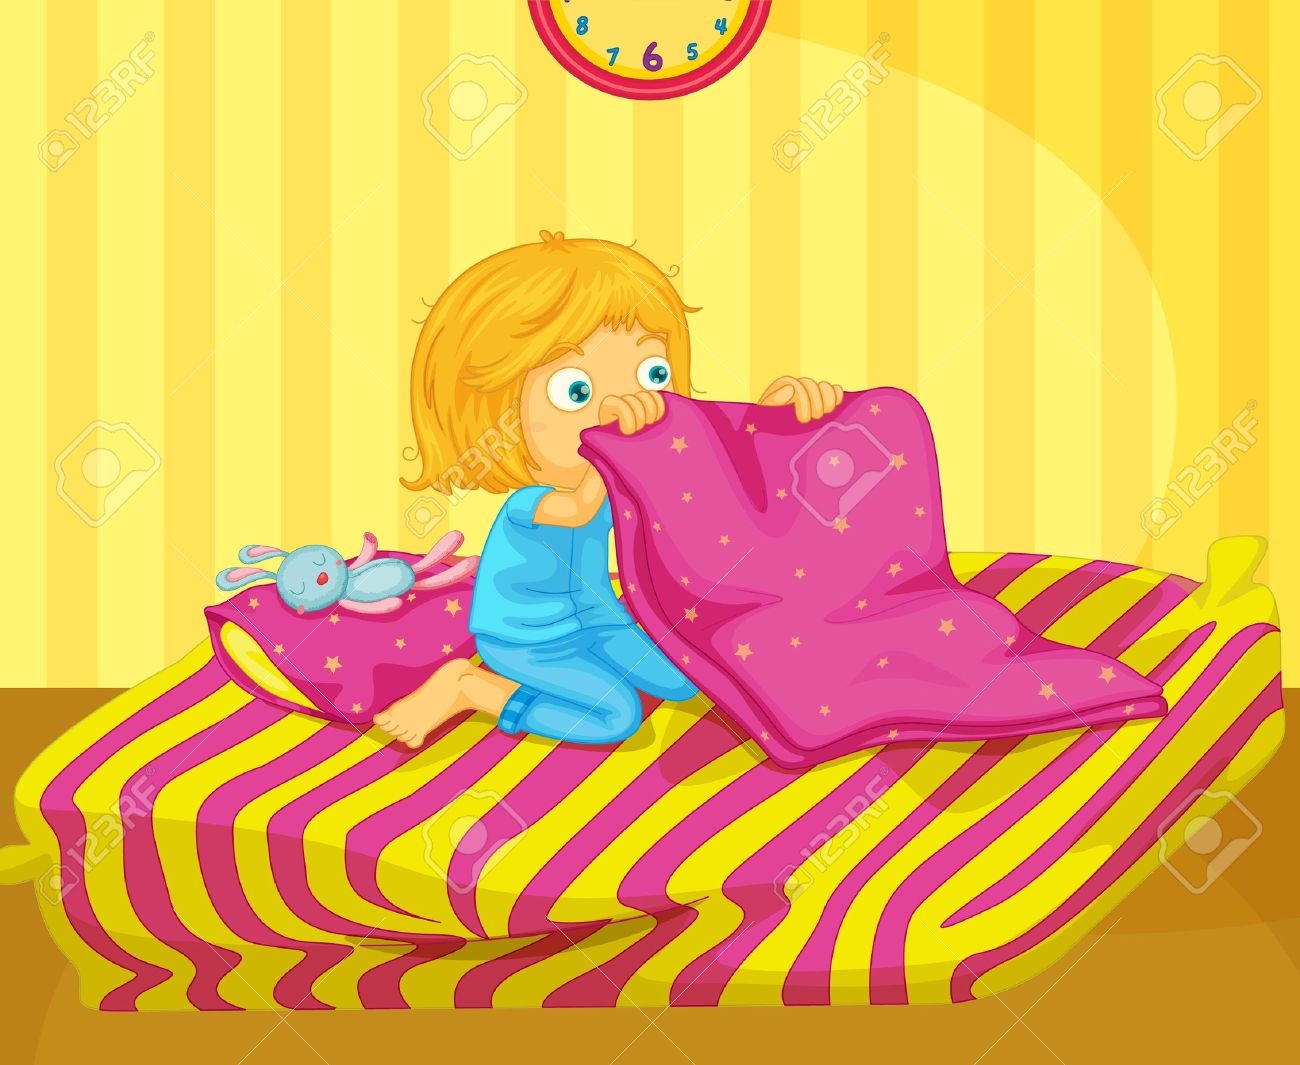 make bed  Illustration of recently woken girl Illustration. Make Bed Stock Photos Images  Royalty Free Make Bed Images And